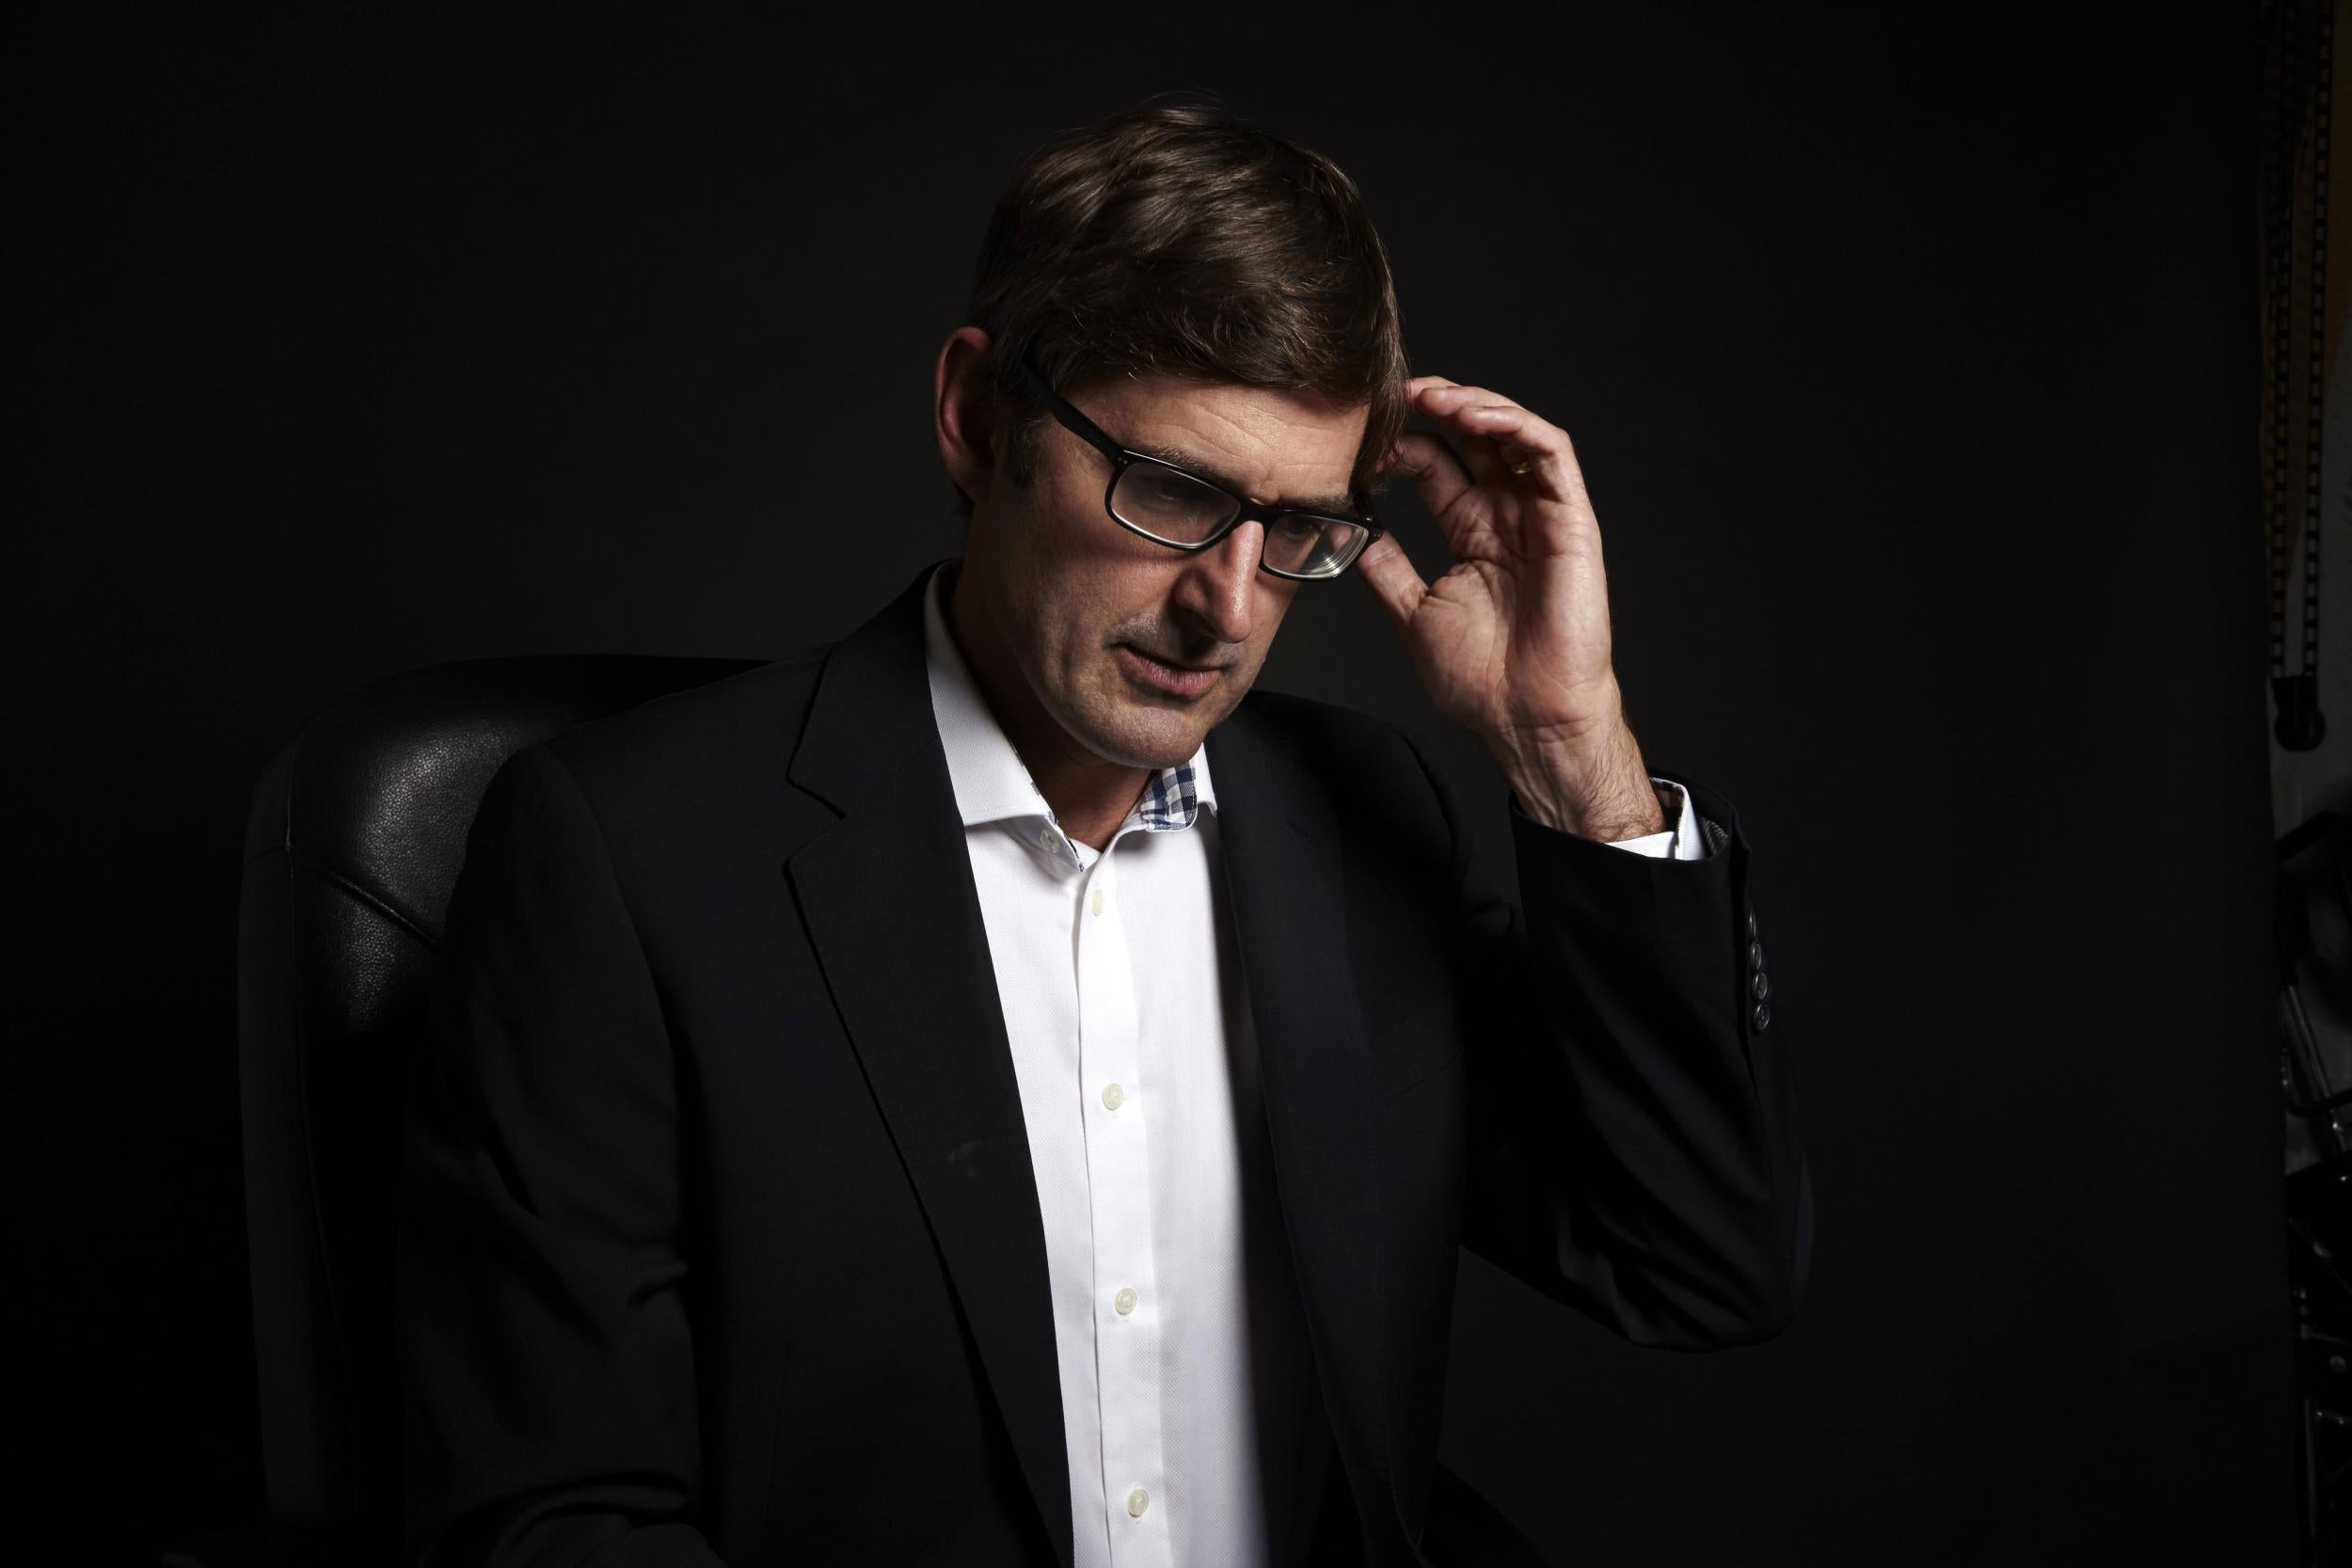 Louis Theroux says he's still 'haunted' by Jimmy Savile experience